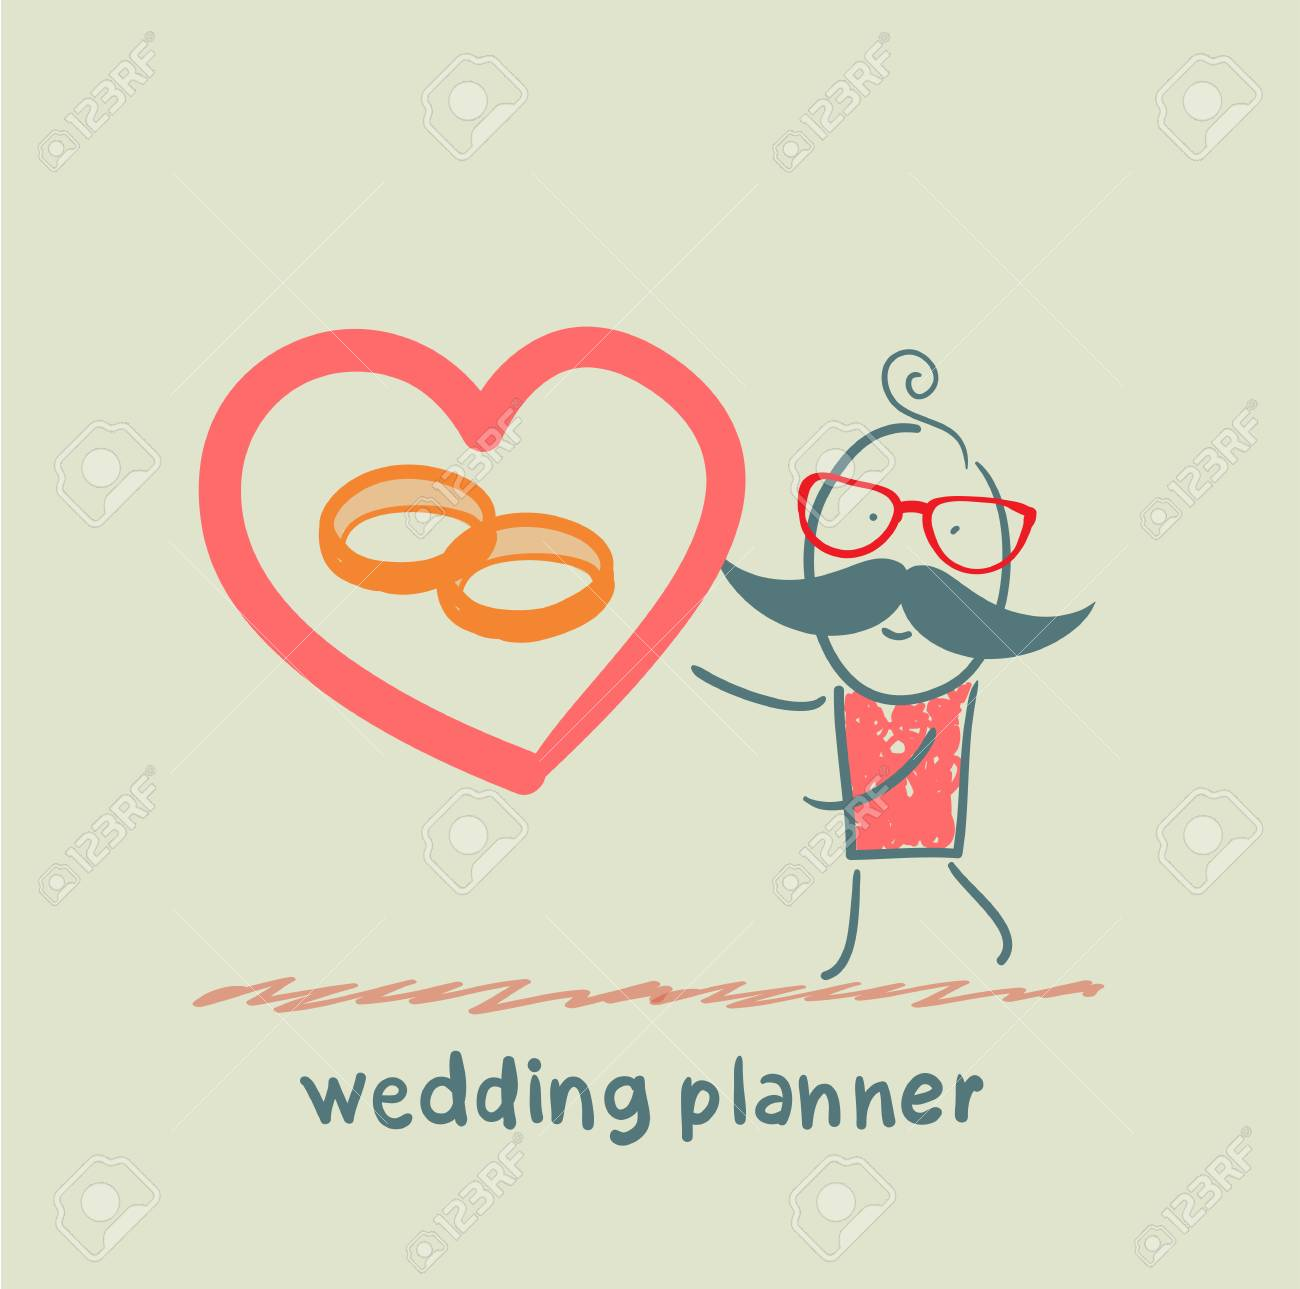 wedding planner ring shows Stock Vector - 23703223